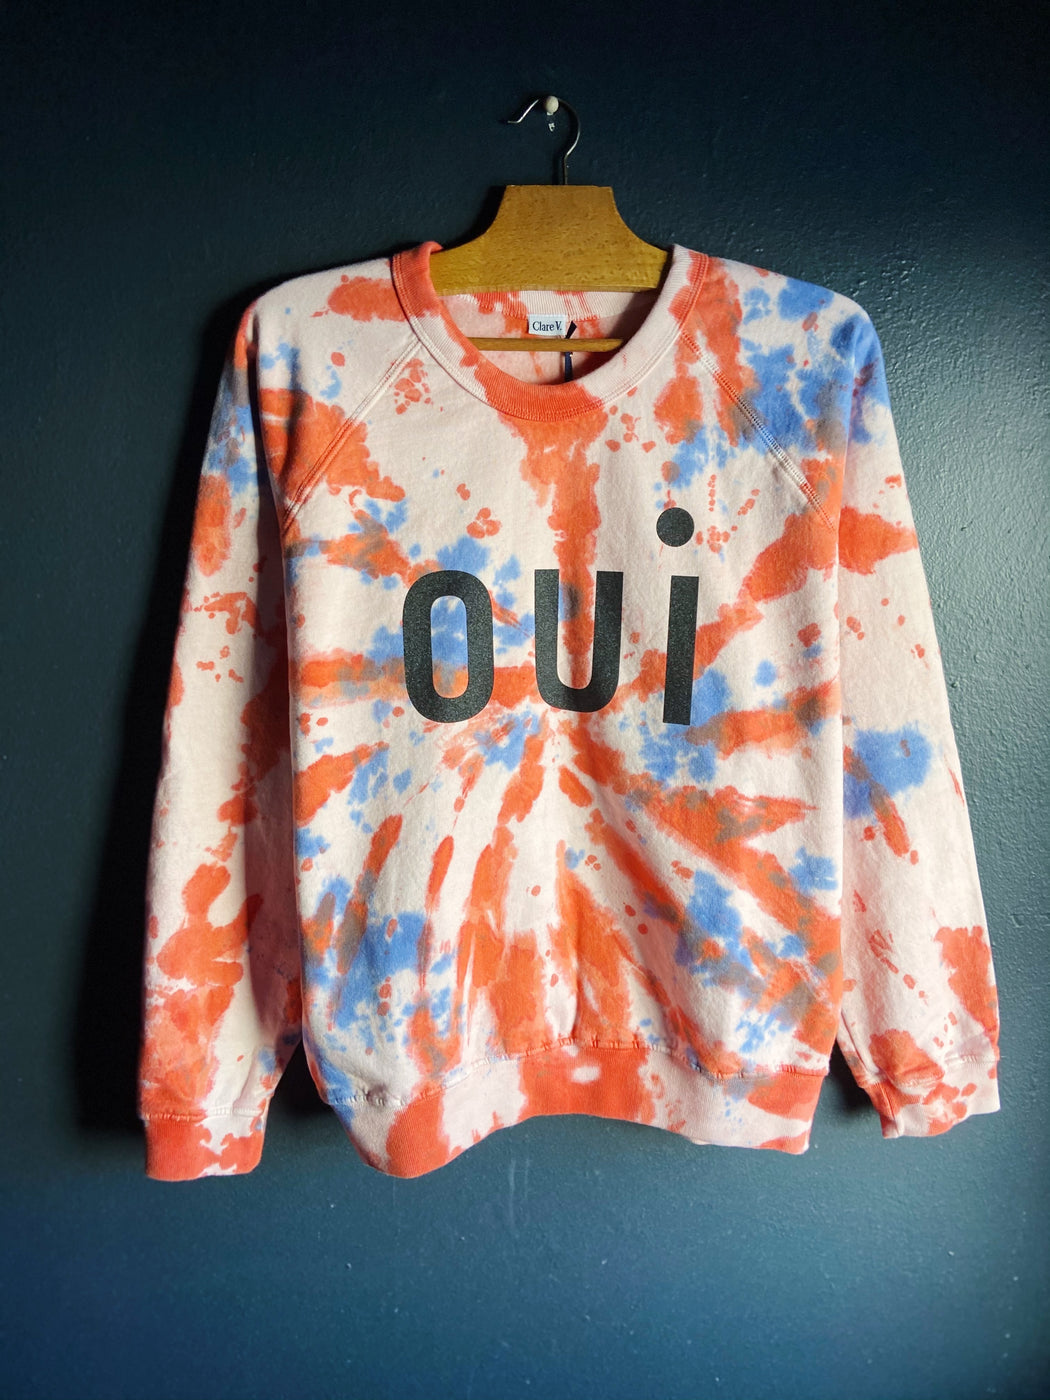 Clare V. Tie Dye Oui Long Sleeve Sweatshirt in Blush